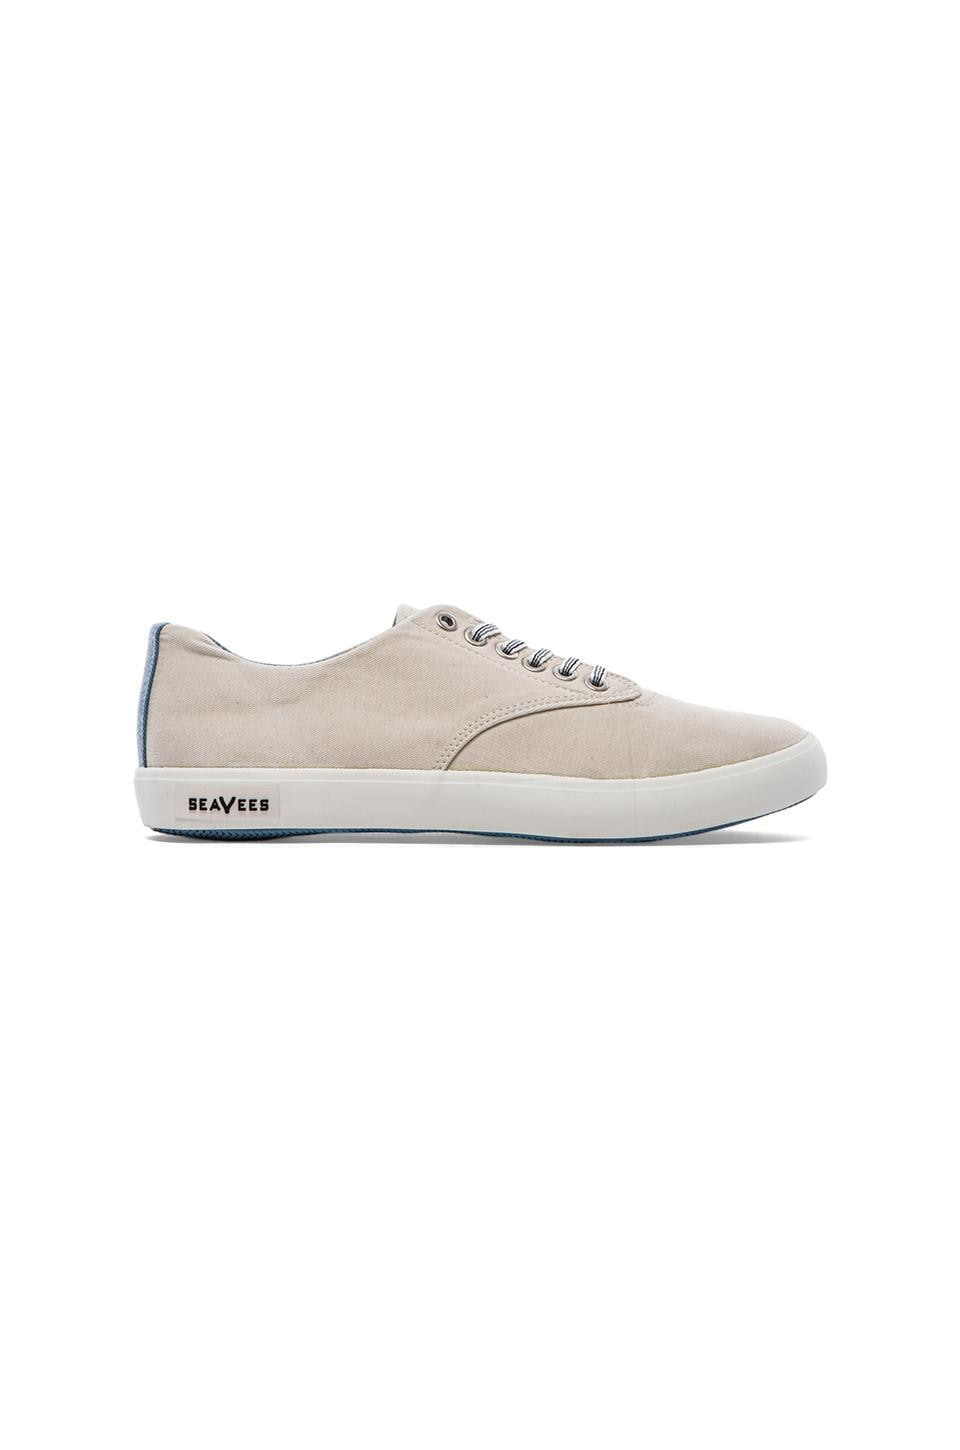 SeaVees x Katin USA 08/63 Hermosa Plimsoll in Shell Vintage